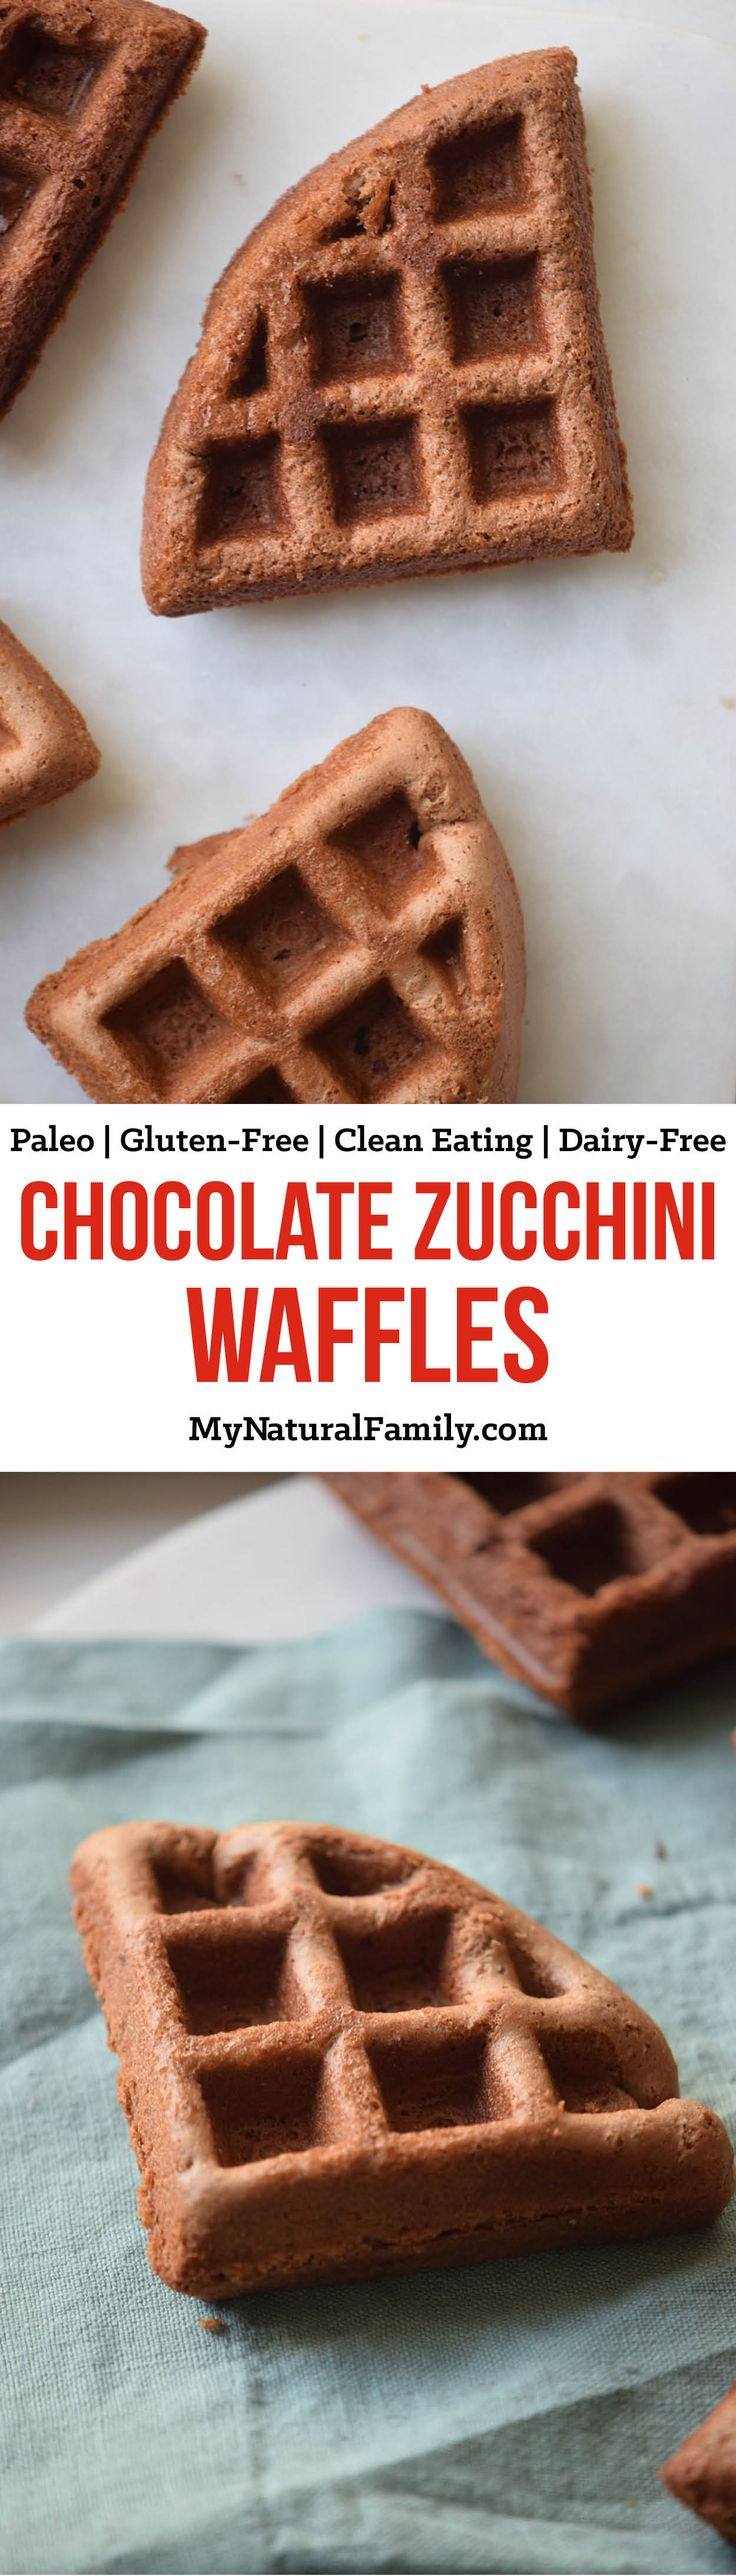 Chocolate Zucchini Paleo Waffles Recipe - these are so good, I would eat them even if I wasn't trying to eat Paleo.